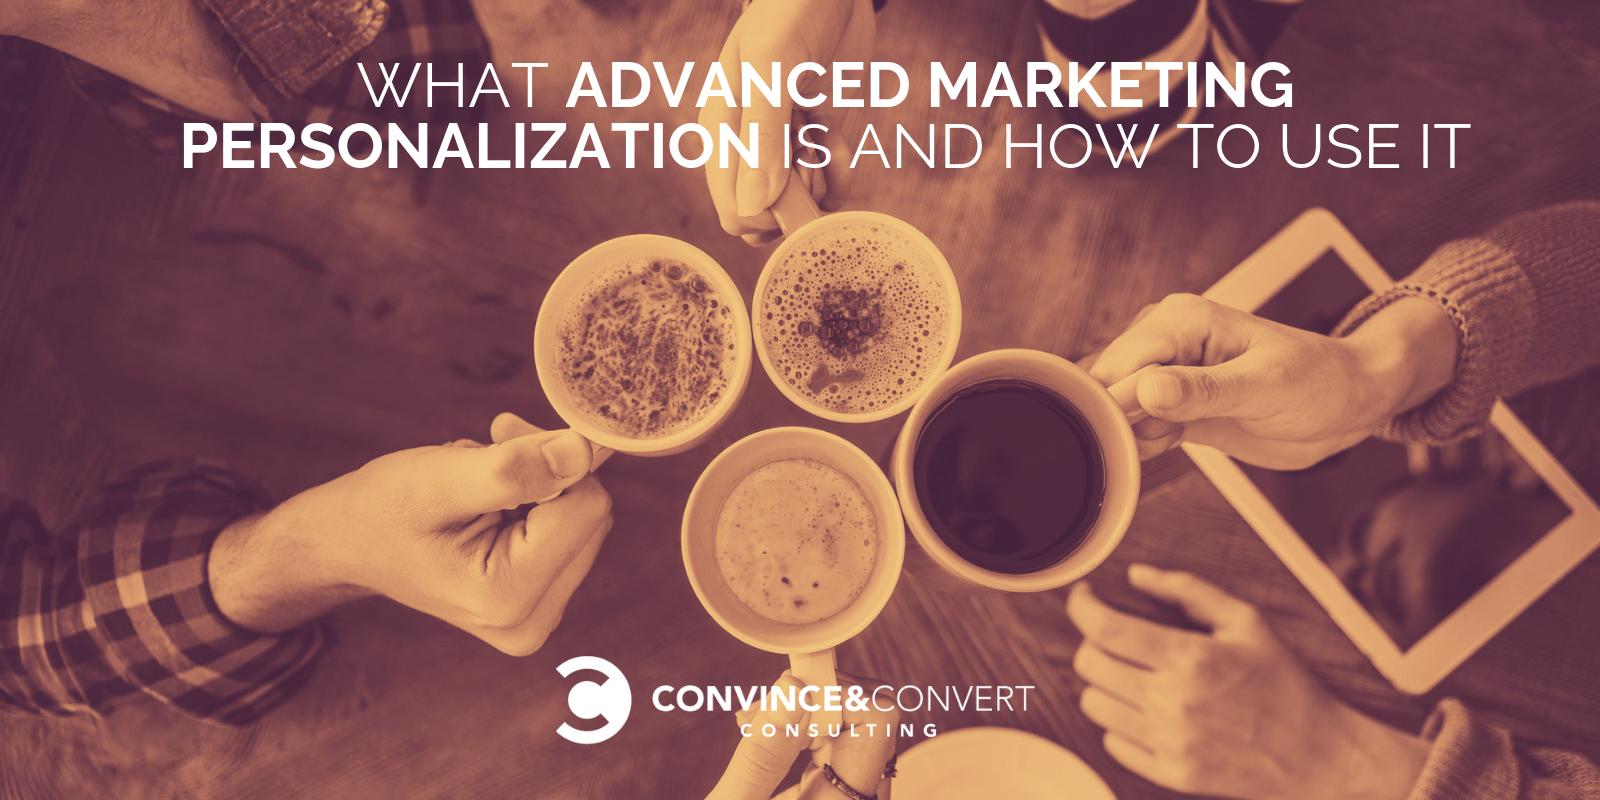 What Advanced Marketing Personalization Is and How to Use It